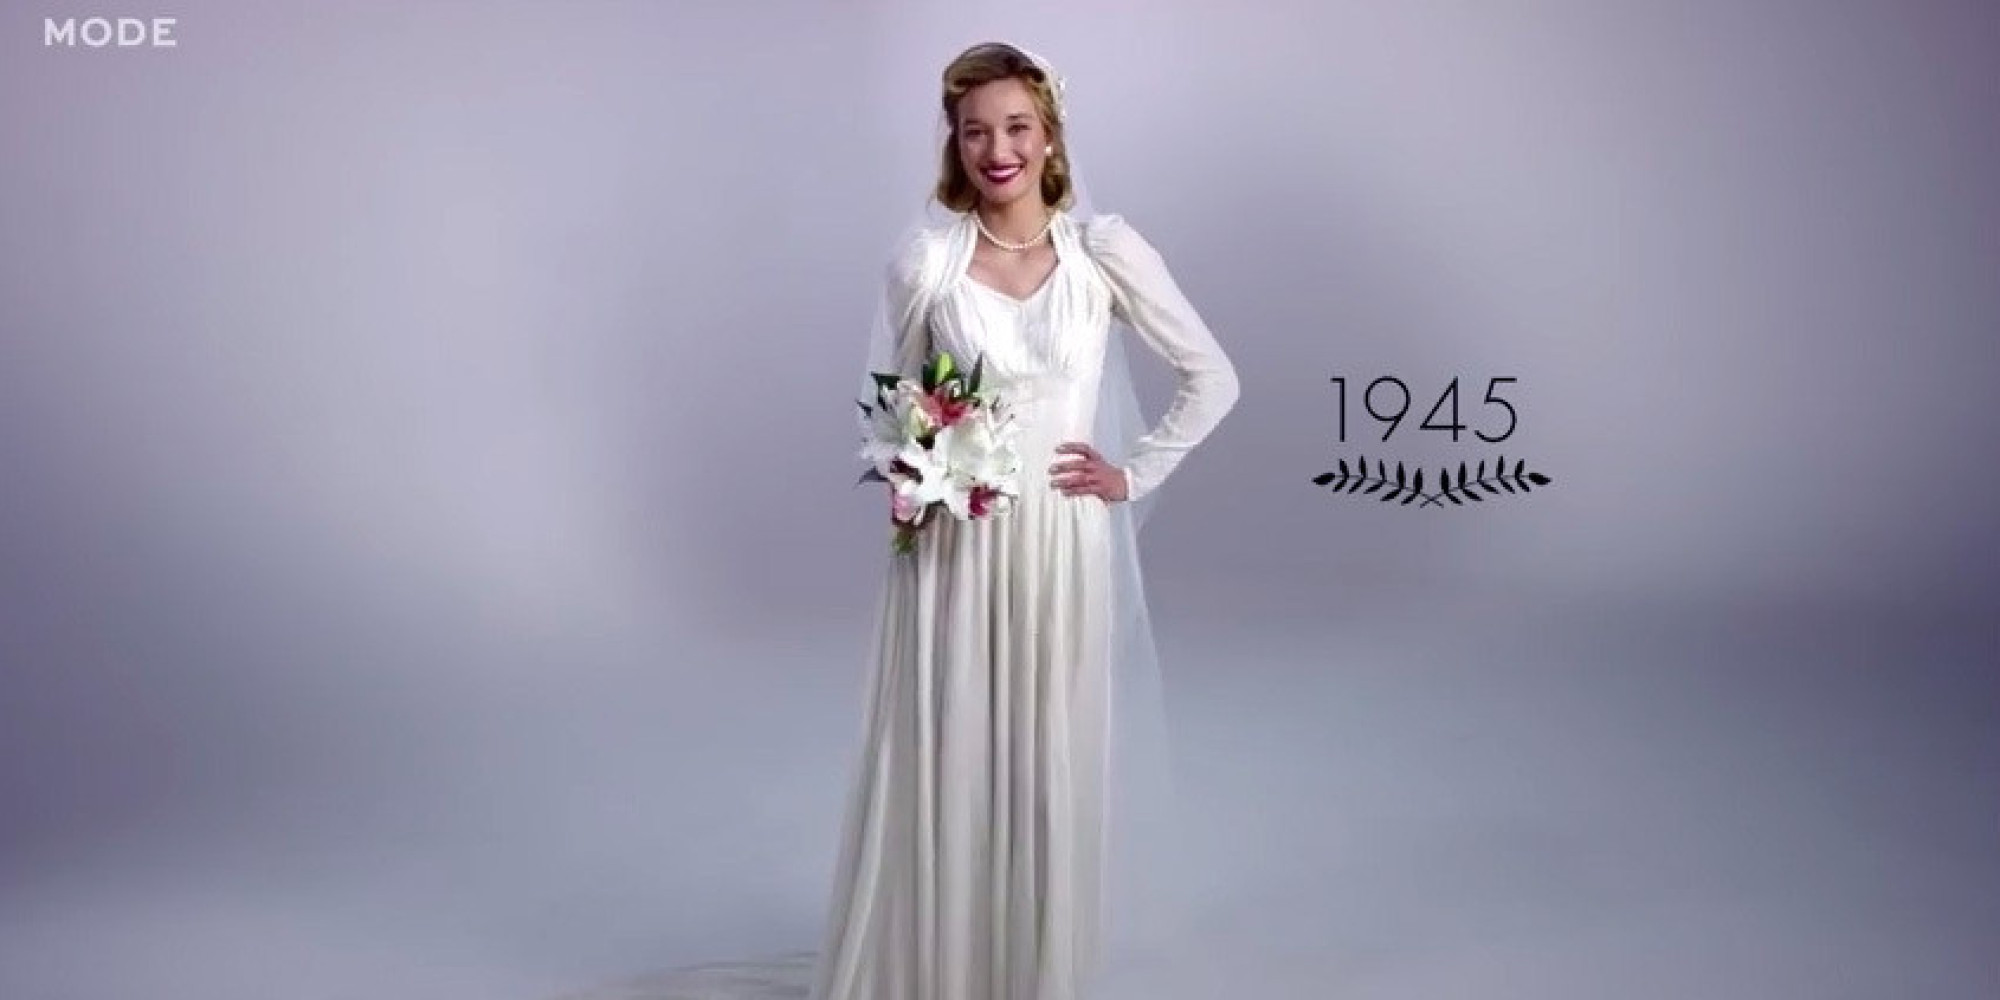 WATCH: 100 Years Of Wedding Dresses In Under 3 Minutes